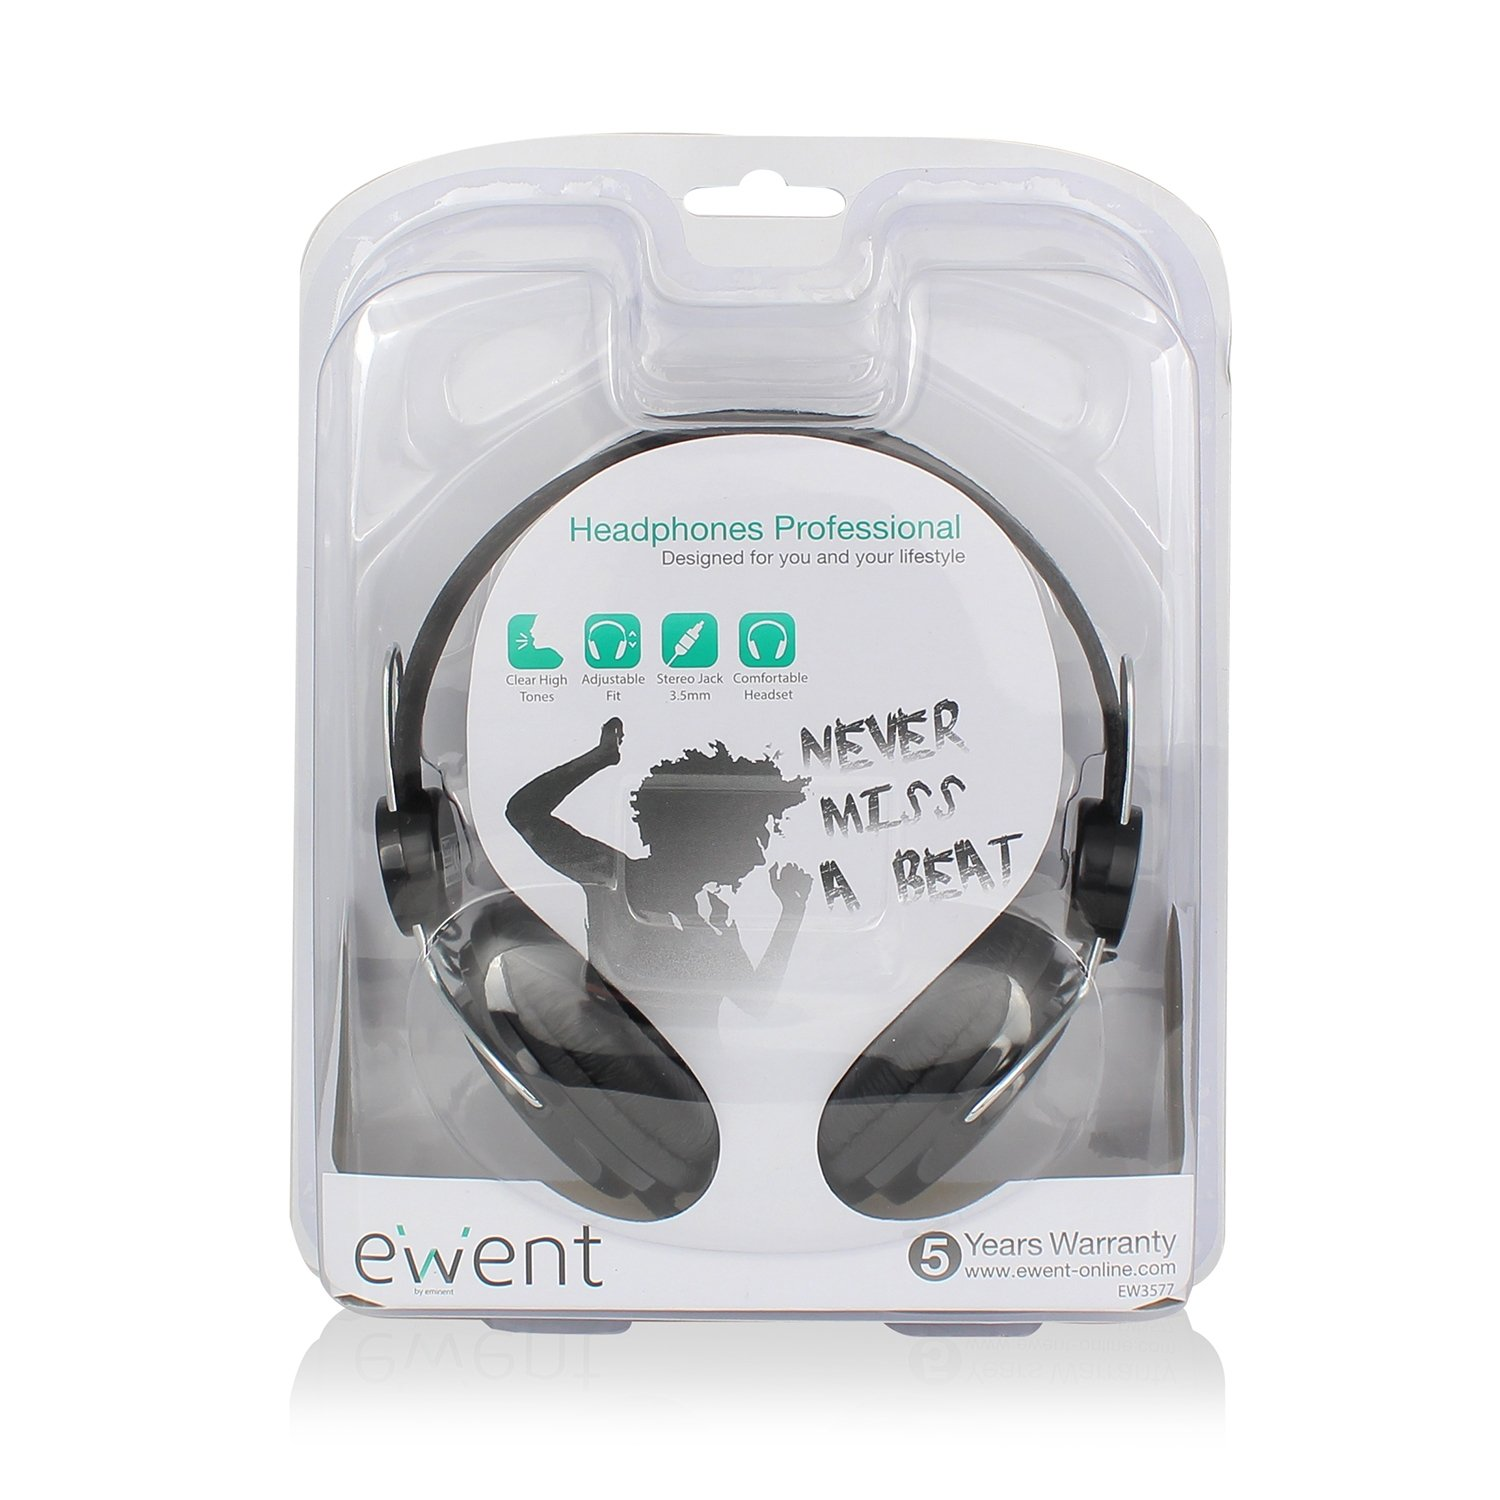 Ewent Cuffie Stereo Professionali ee955501269e